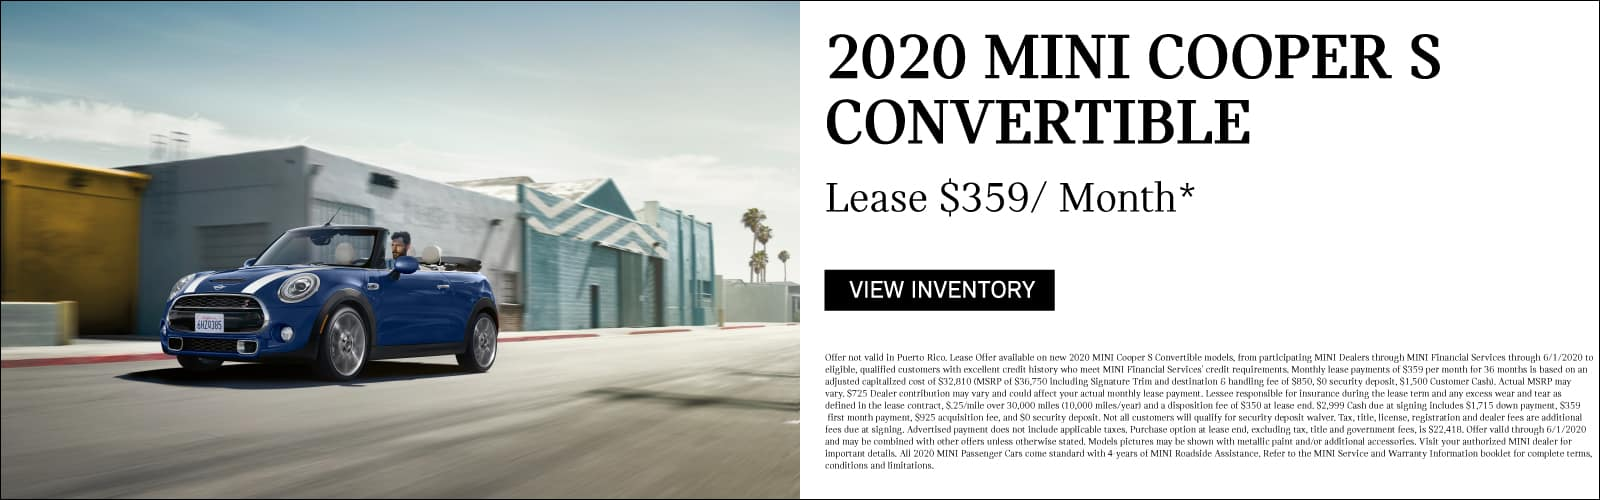 2020 MINI Cooper S Convertible. Lease for $359/ Month.